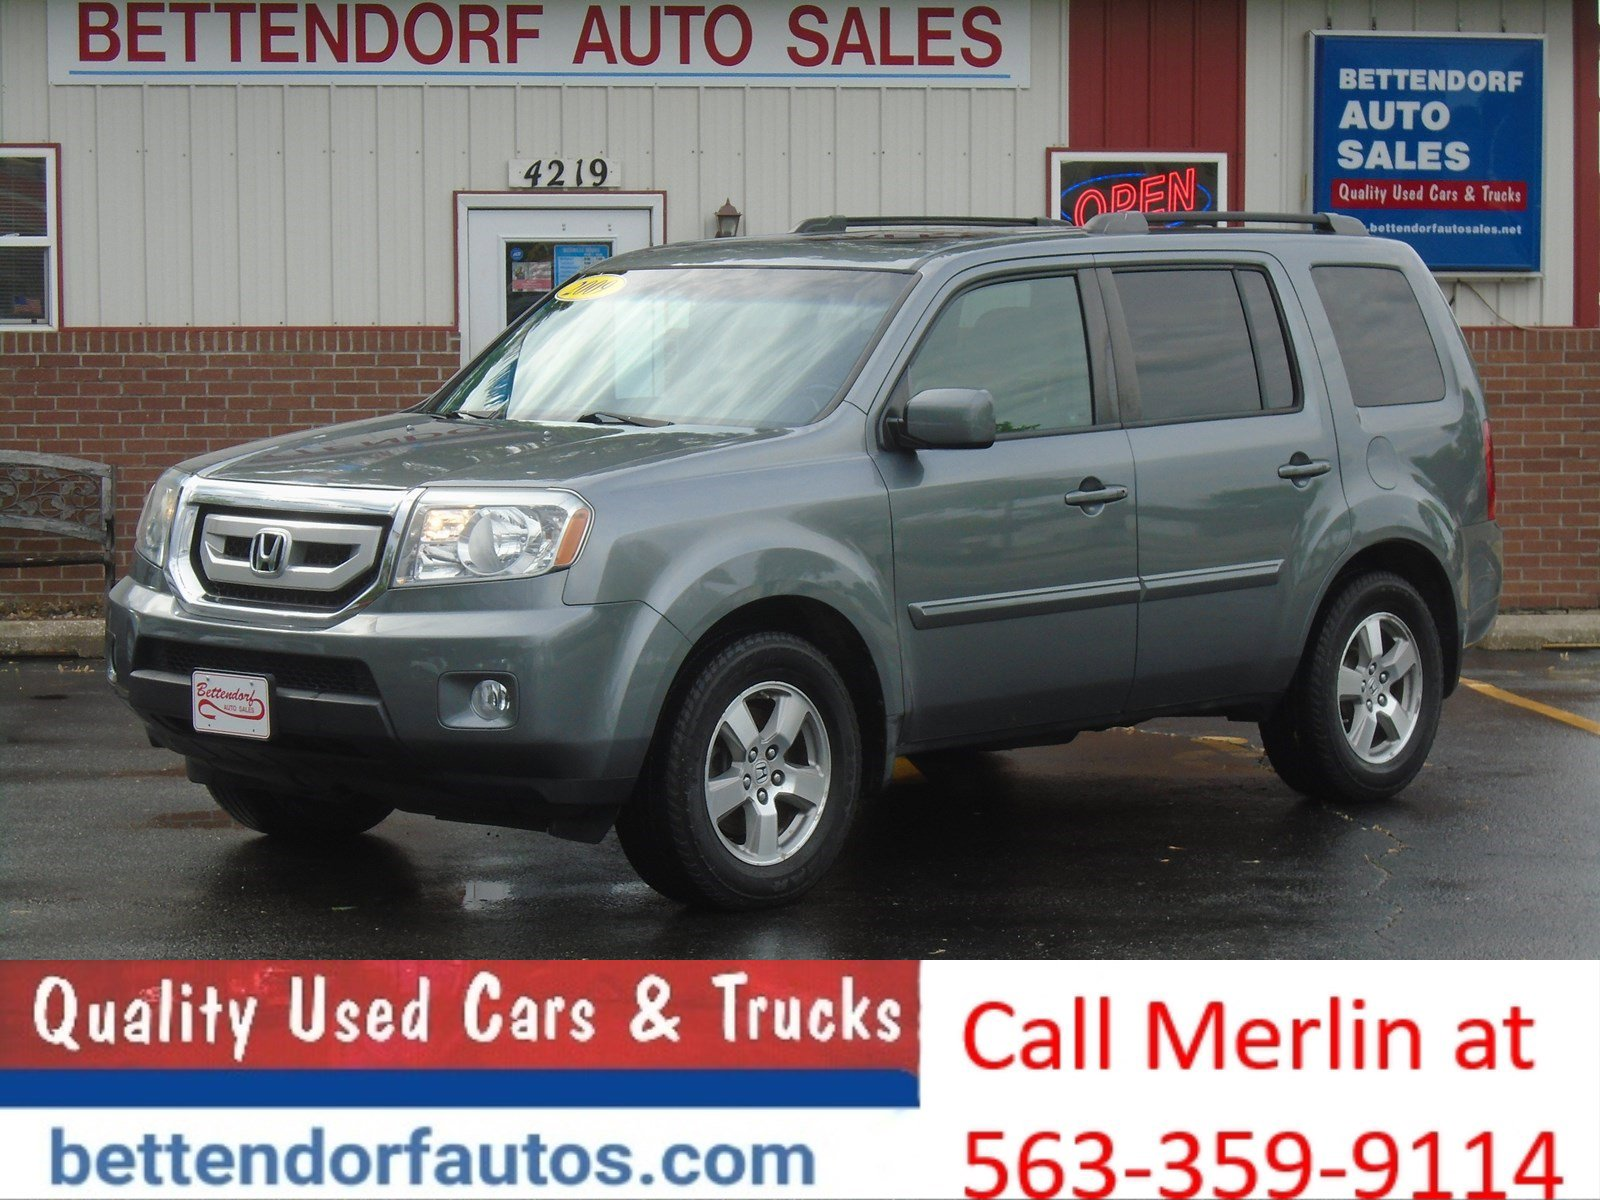 Bettendorf Auto Sales › Bettendorf Auto Sales Quality Used Cars in